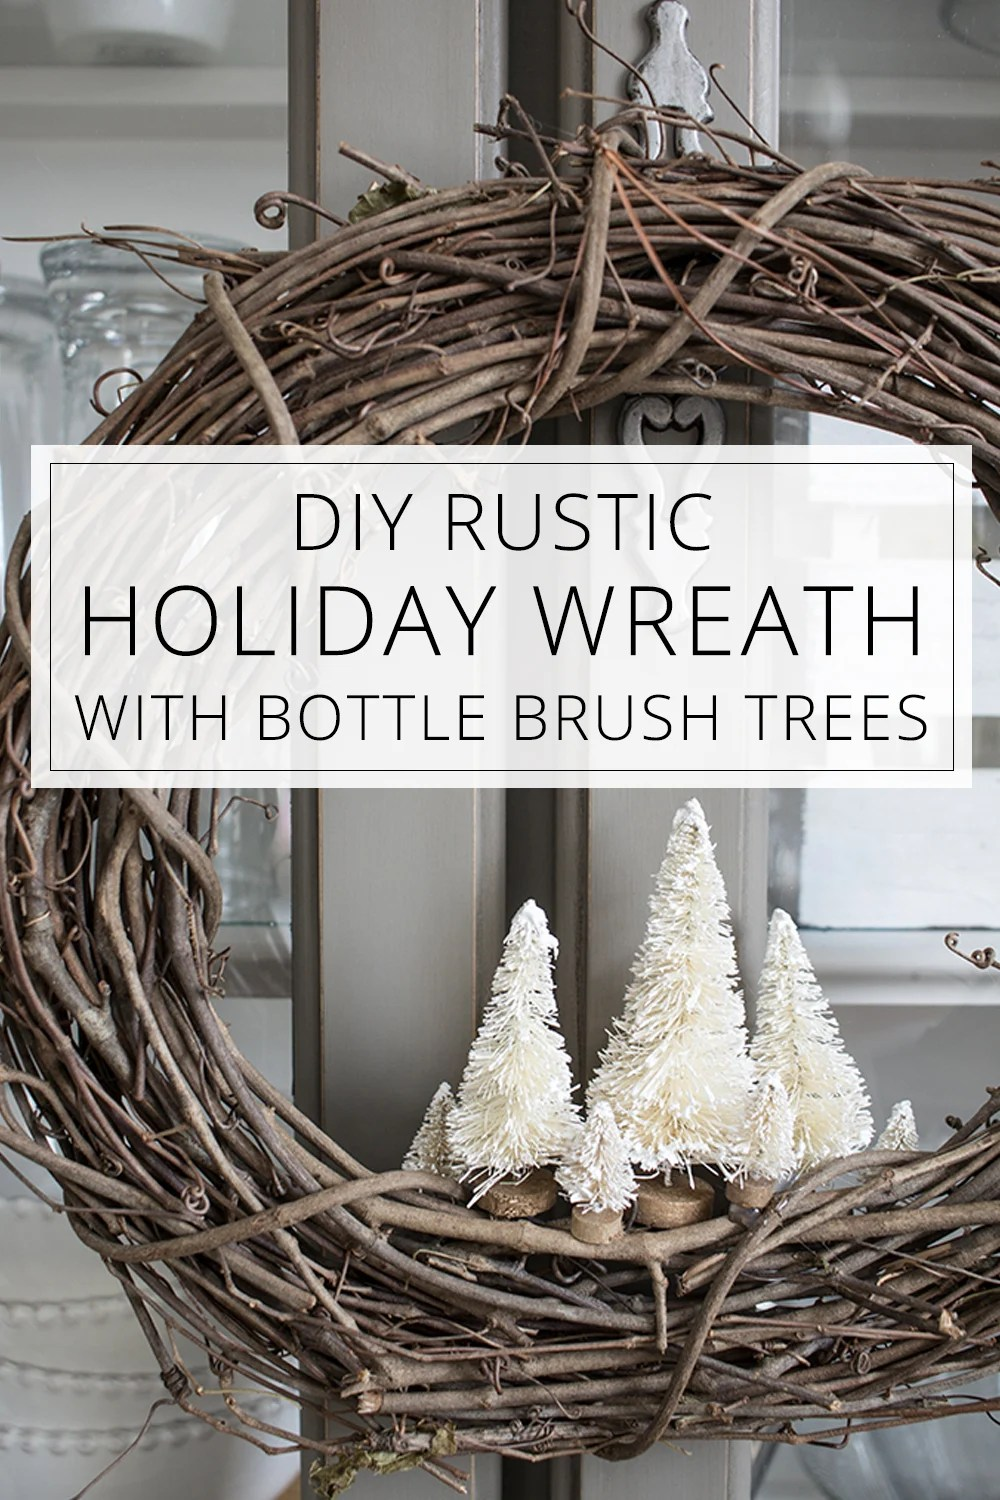 Make your own VERY simple DIY Christmas wreath with a grapevine wreath and a few bottle brush trees for good measure. Easy to make, easy to find supplies.